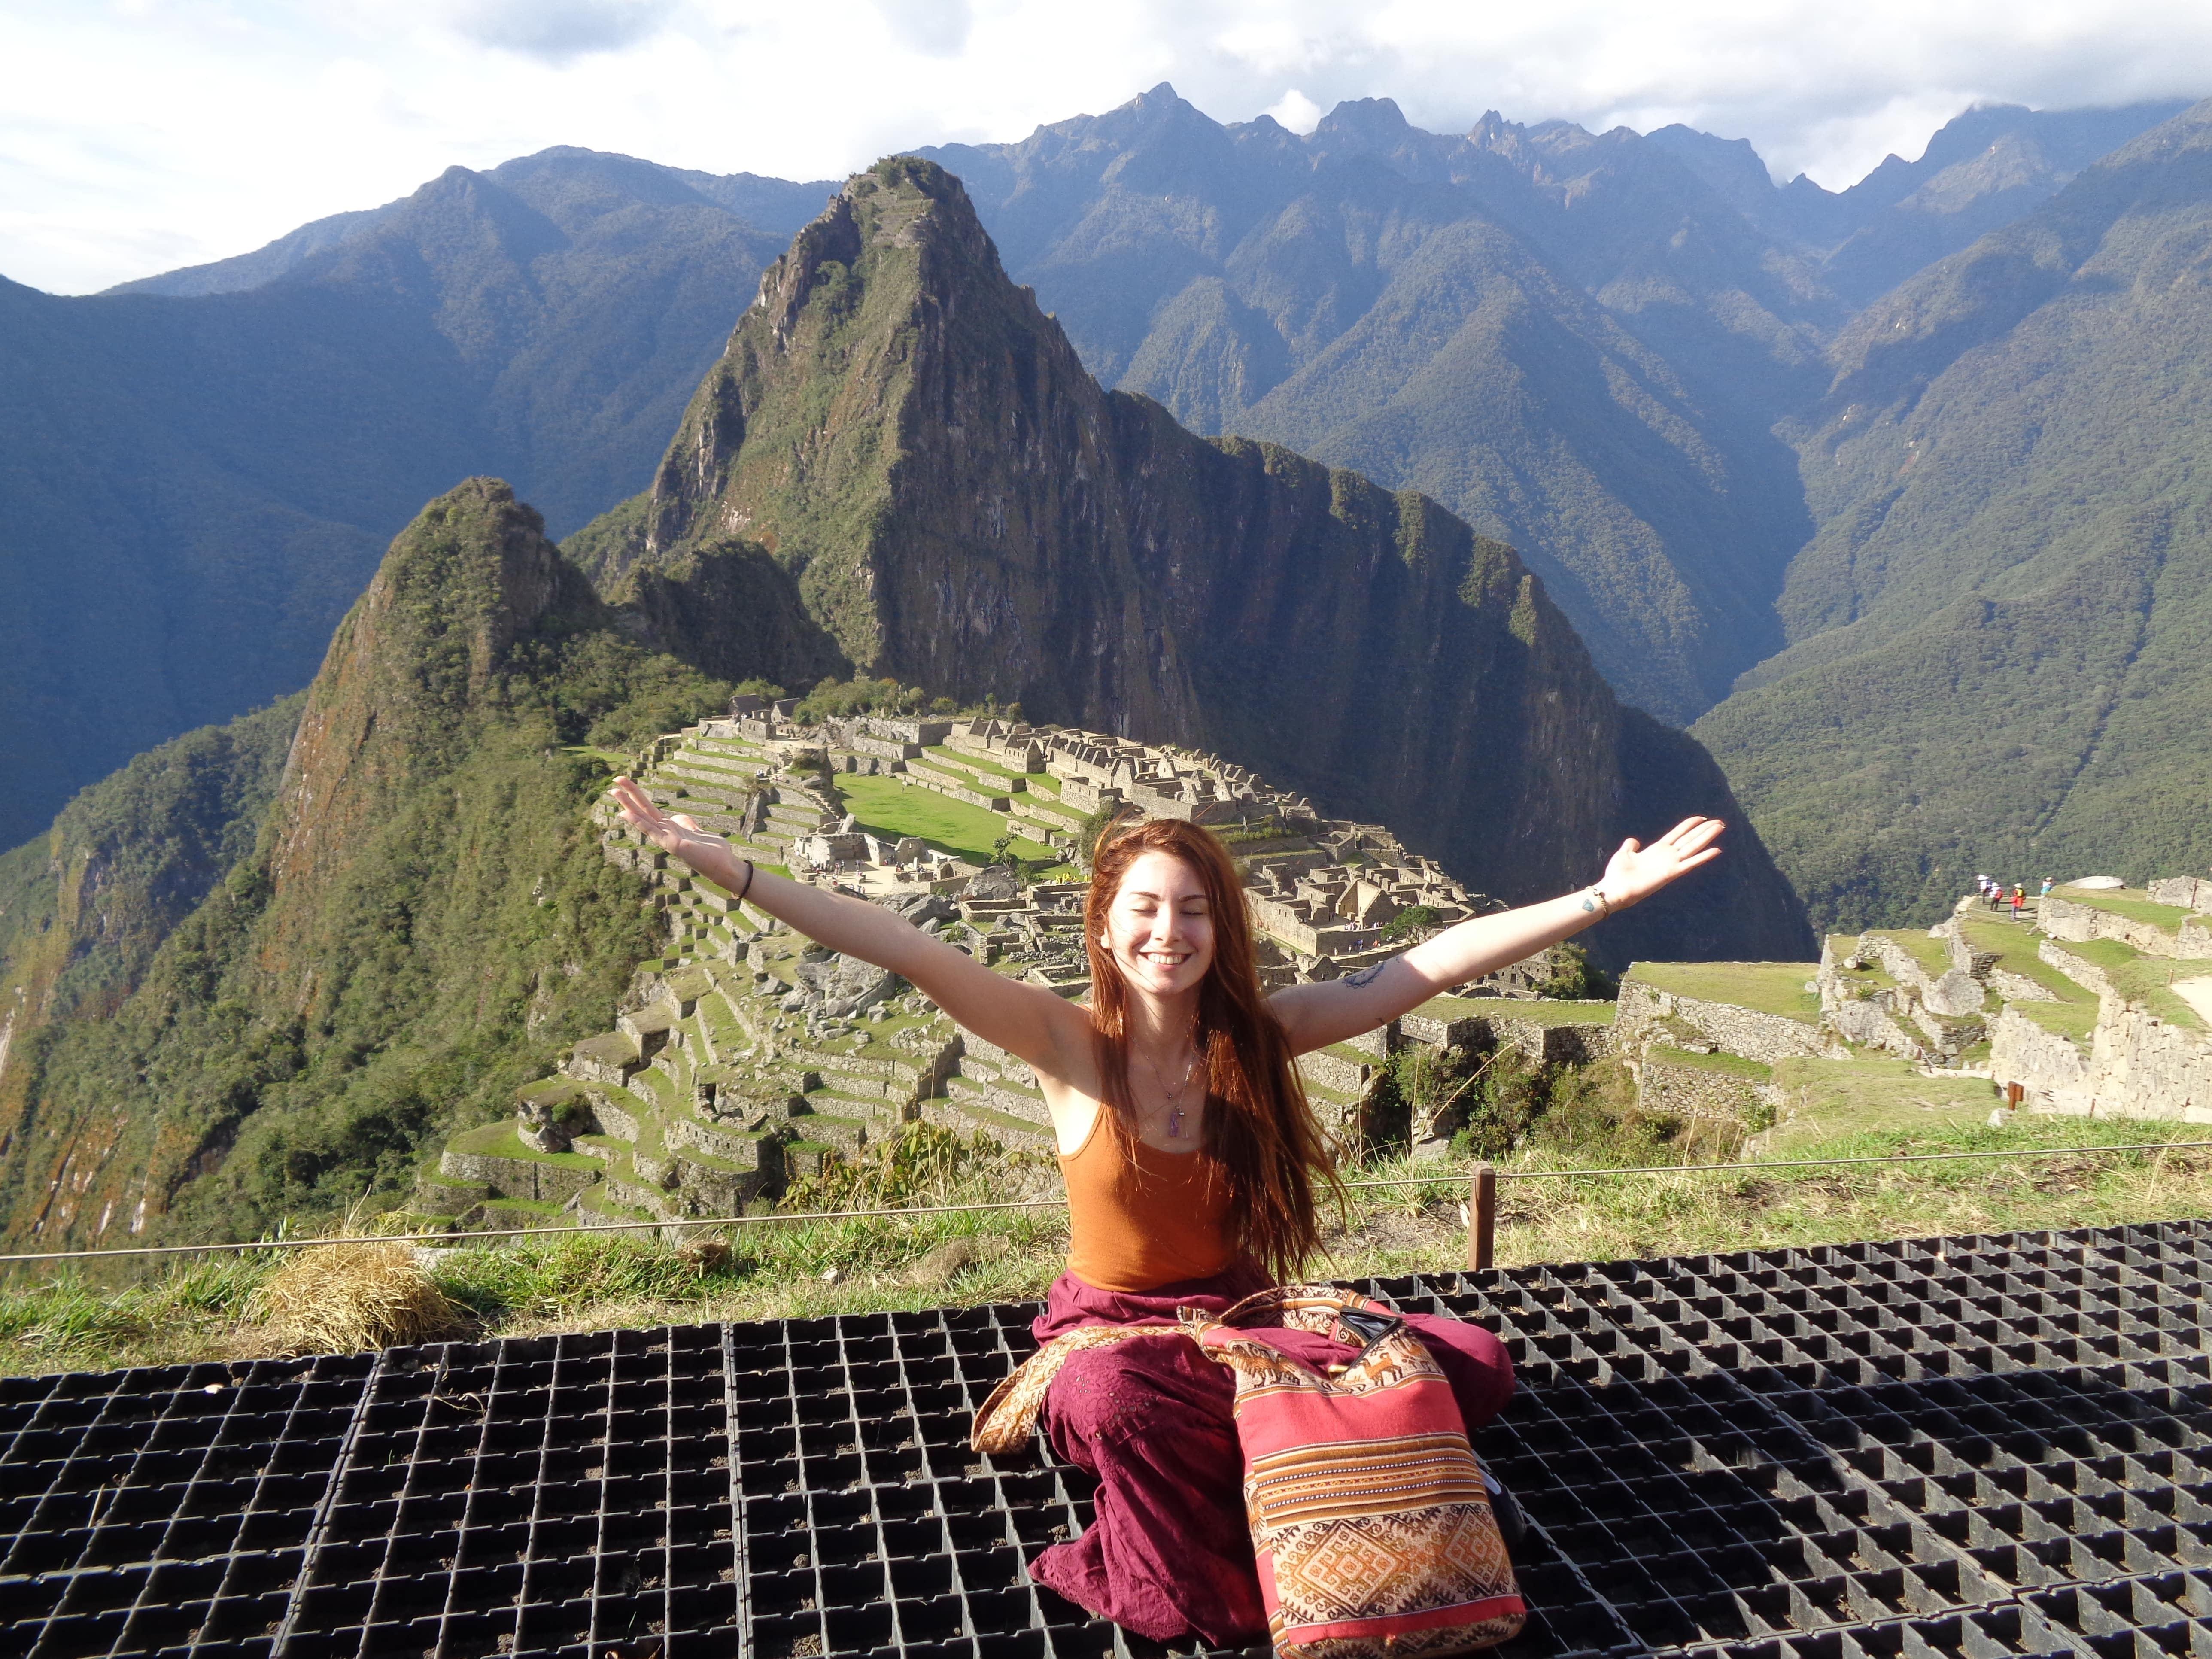 Cusco Tours: Cusco, Machupicchu, Intiraymi and Sacred Valley5Days/4Nights. The best tourist packages in Peru and South America.